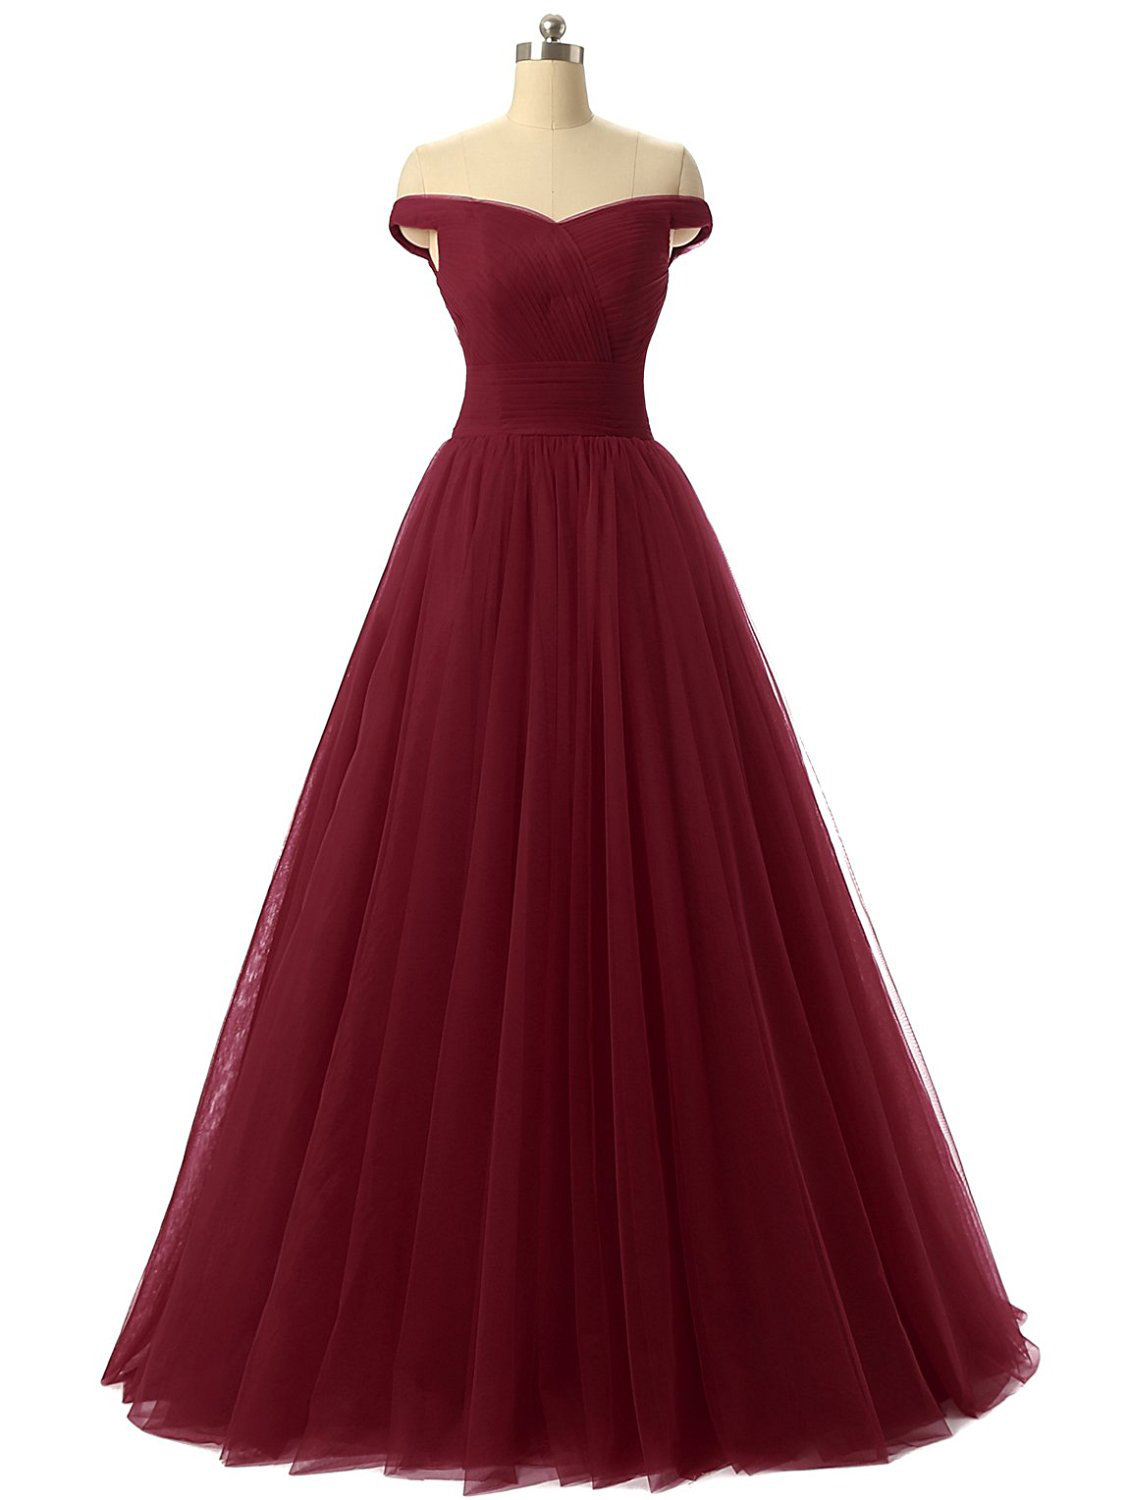 0398e7db11 Discount Burgundy Off-the-Shoulder A-Line Formal Evening Prom Dresses  TCDFD7353